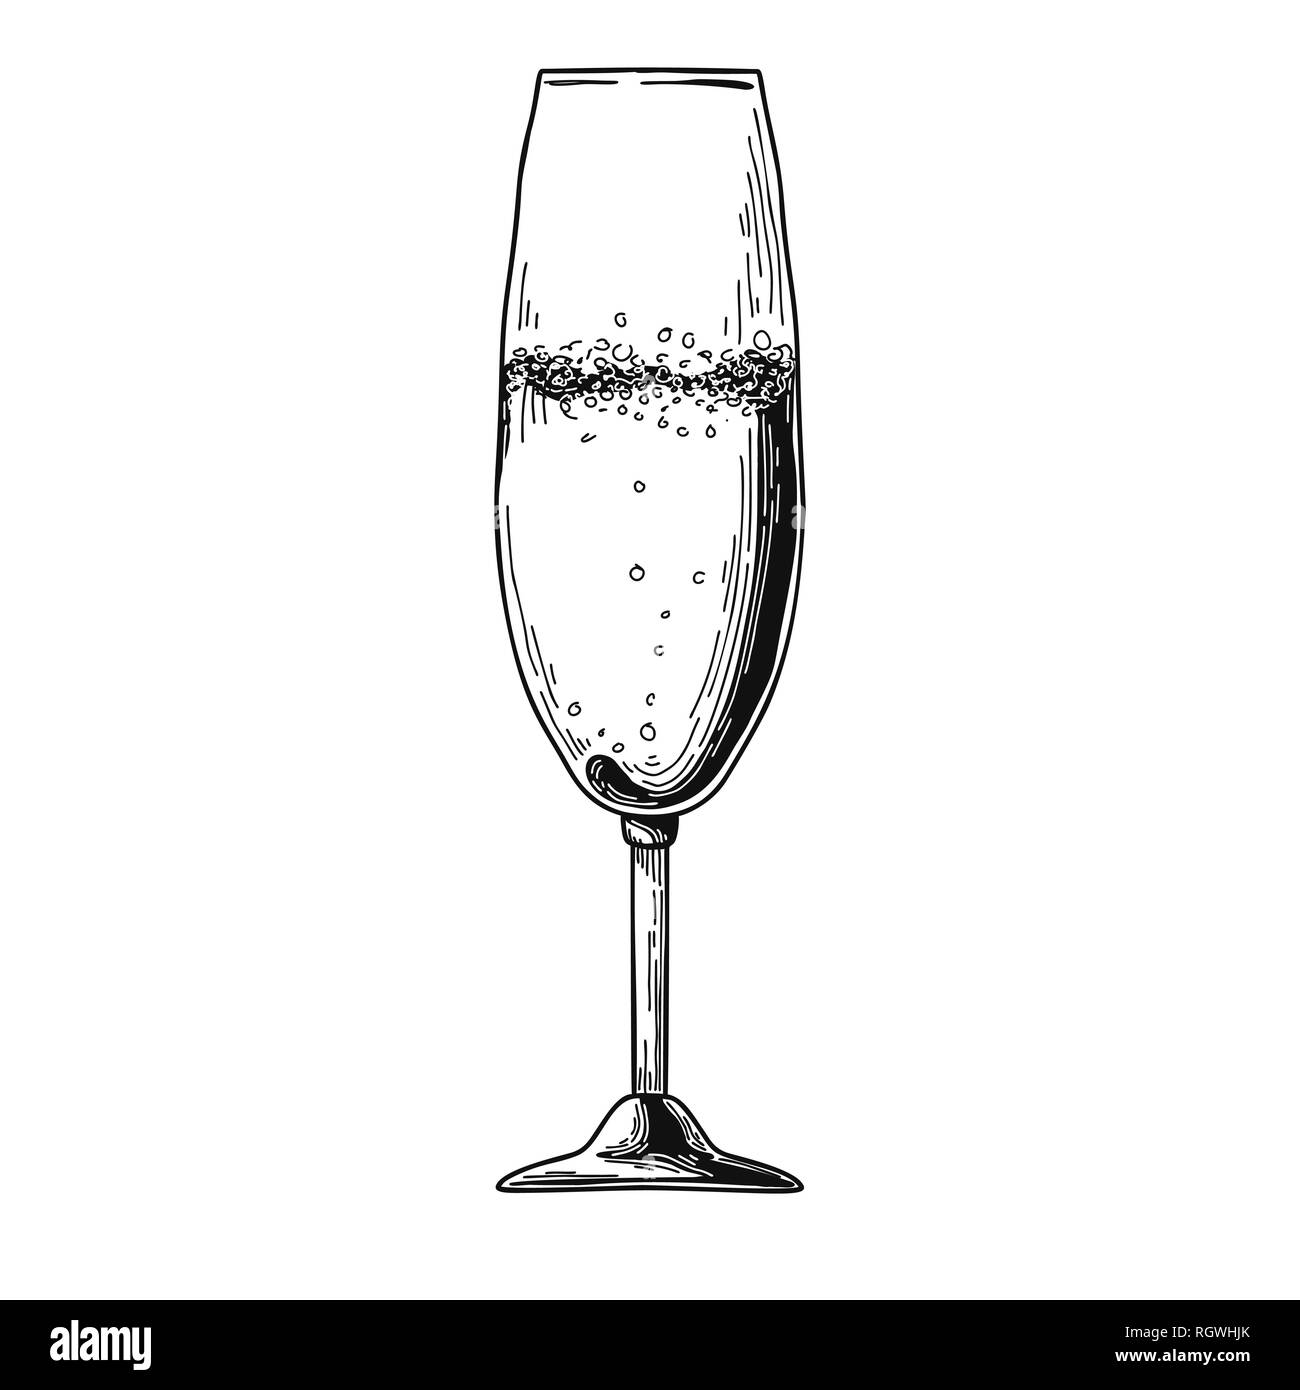 0ab31fe941a Champagne flute isolated on white background. Vector illustration on white  background - Stock Vector